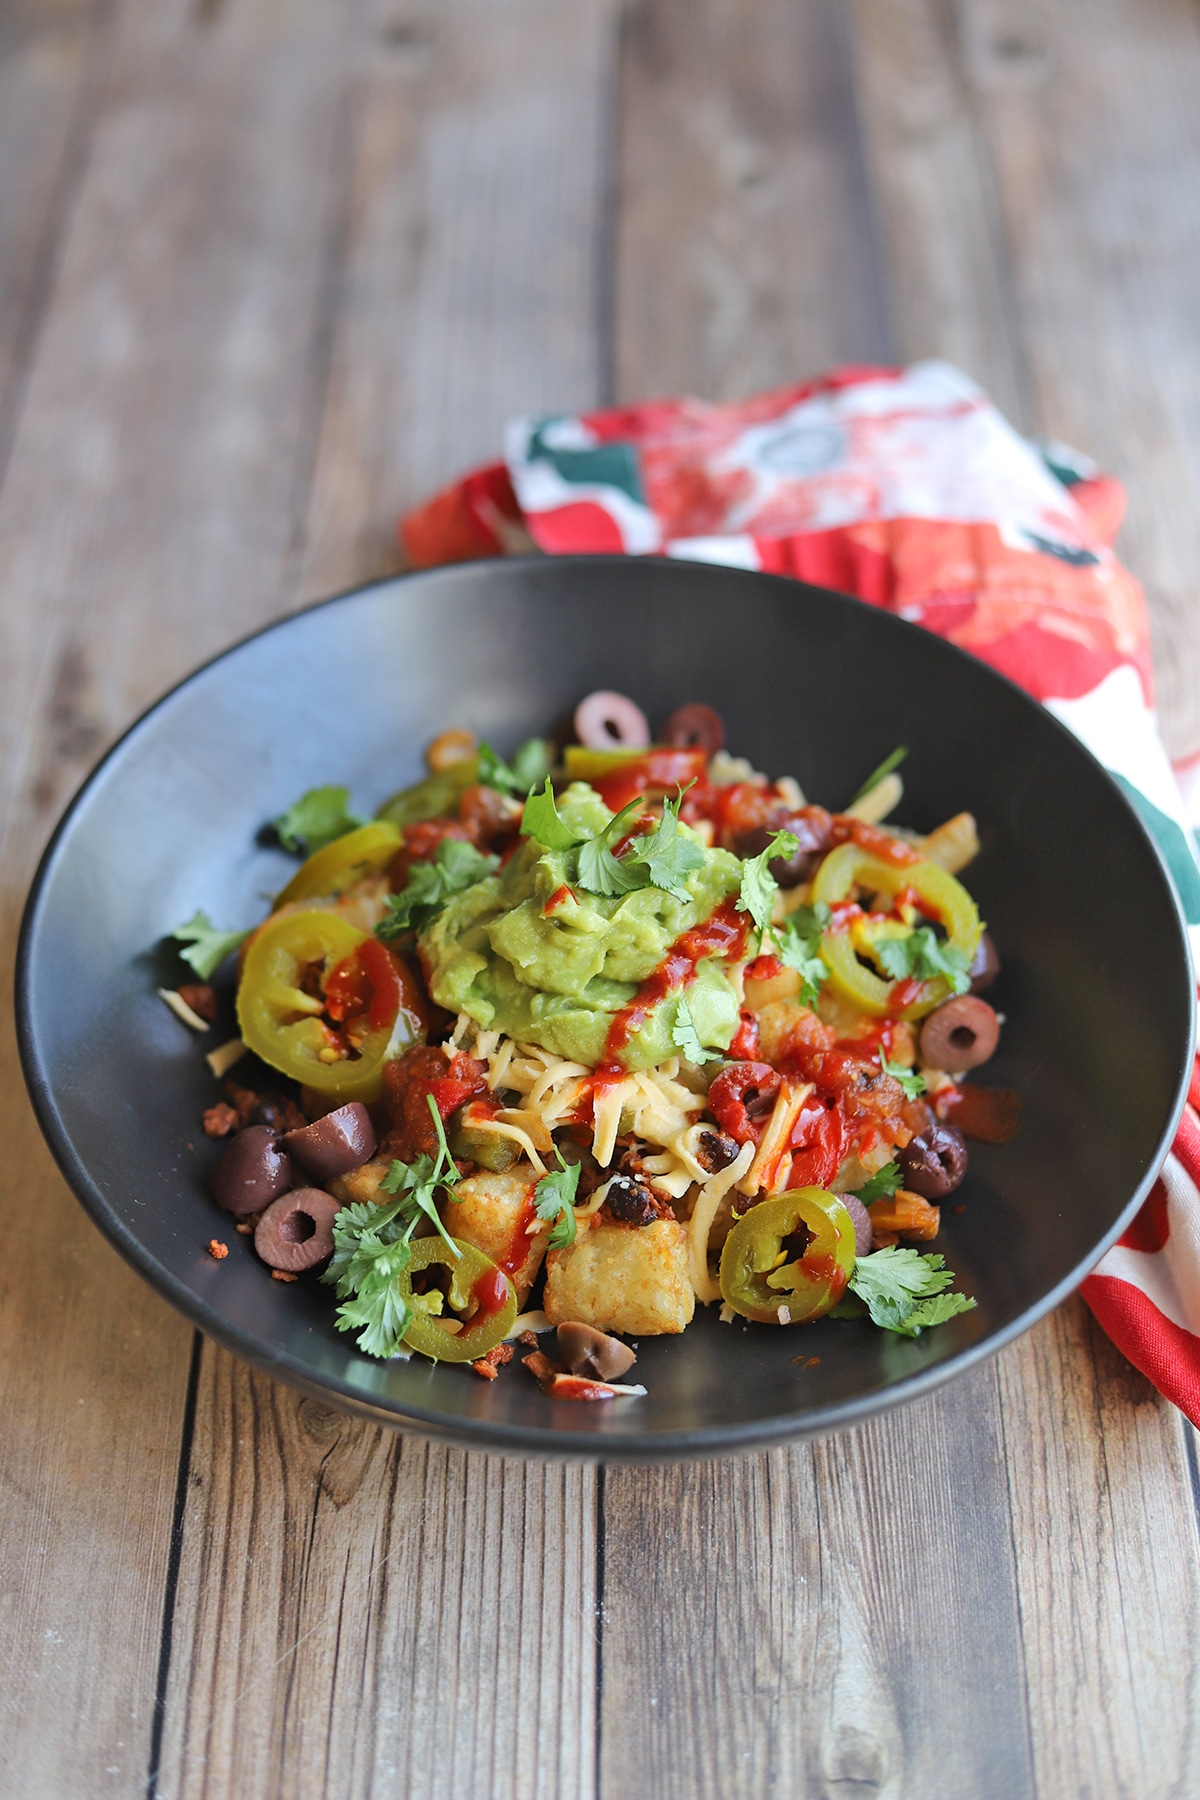 Tater totchos in bowl with non-dairy chese, guacamole, and hot sauce.